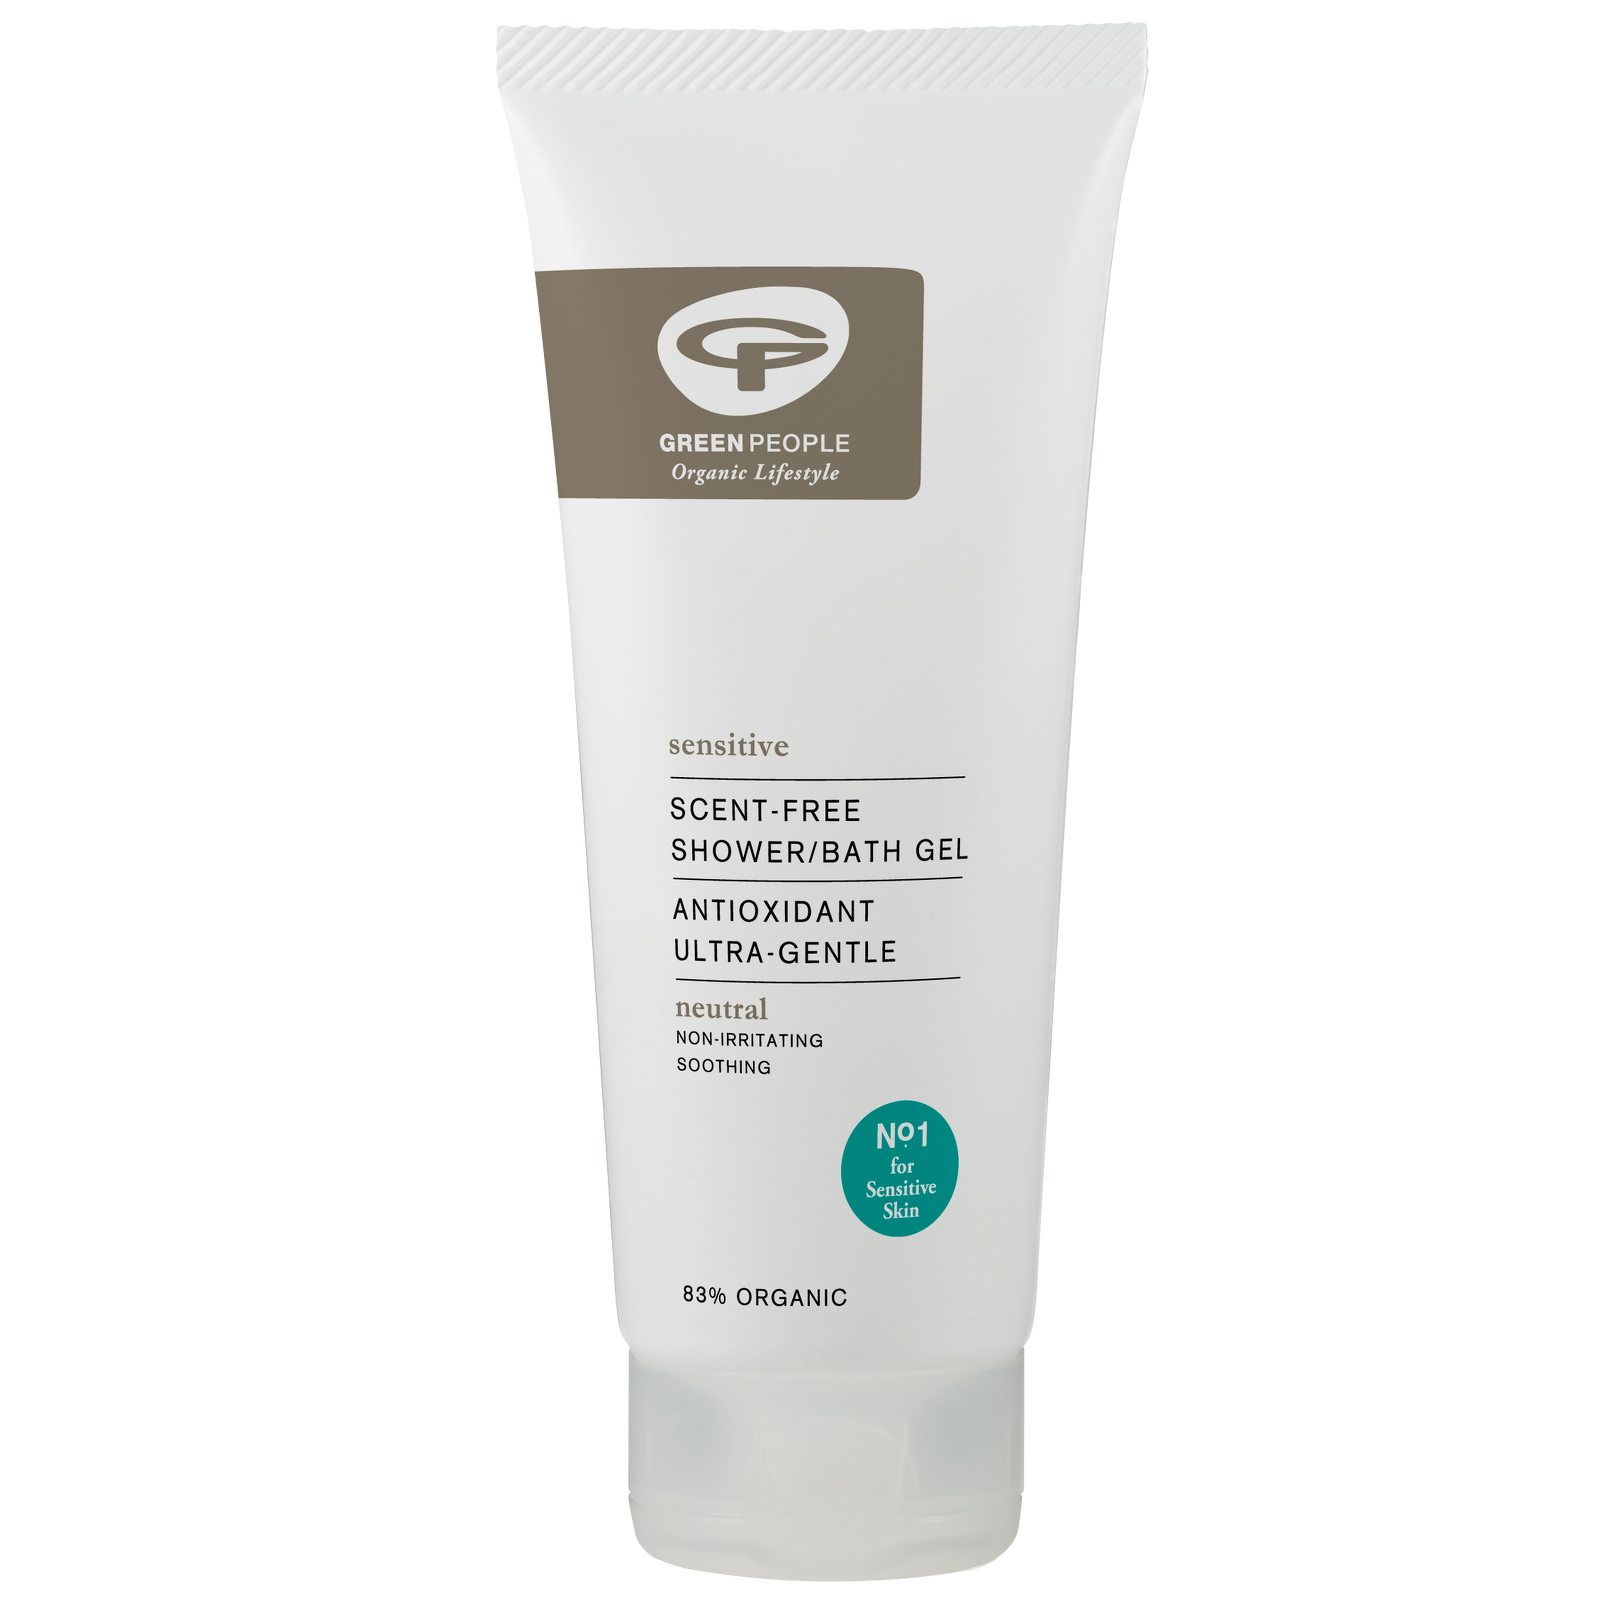 Green People Body Scent Free Shower Gel 200ml